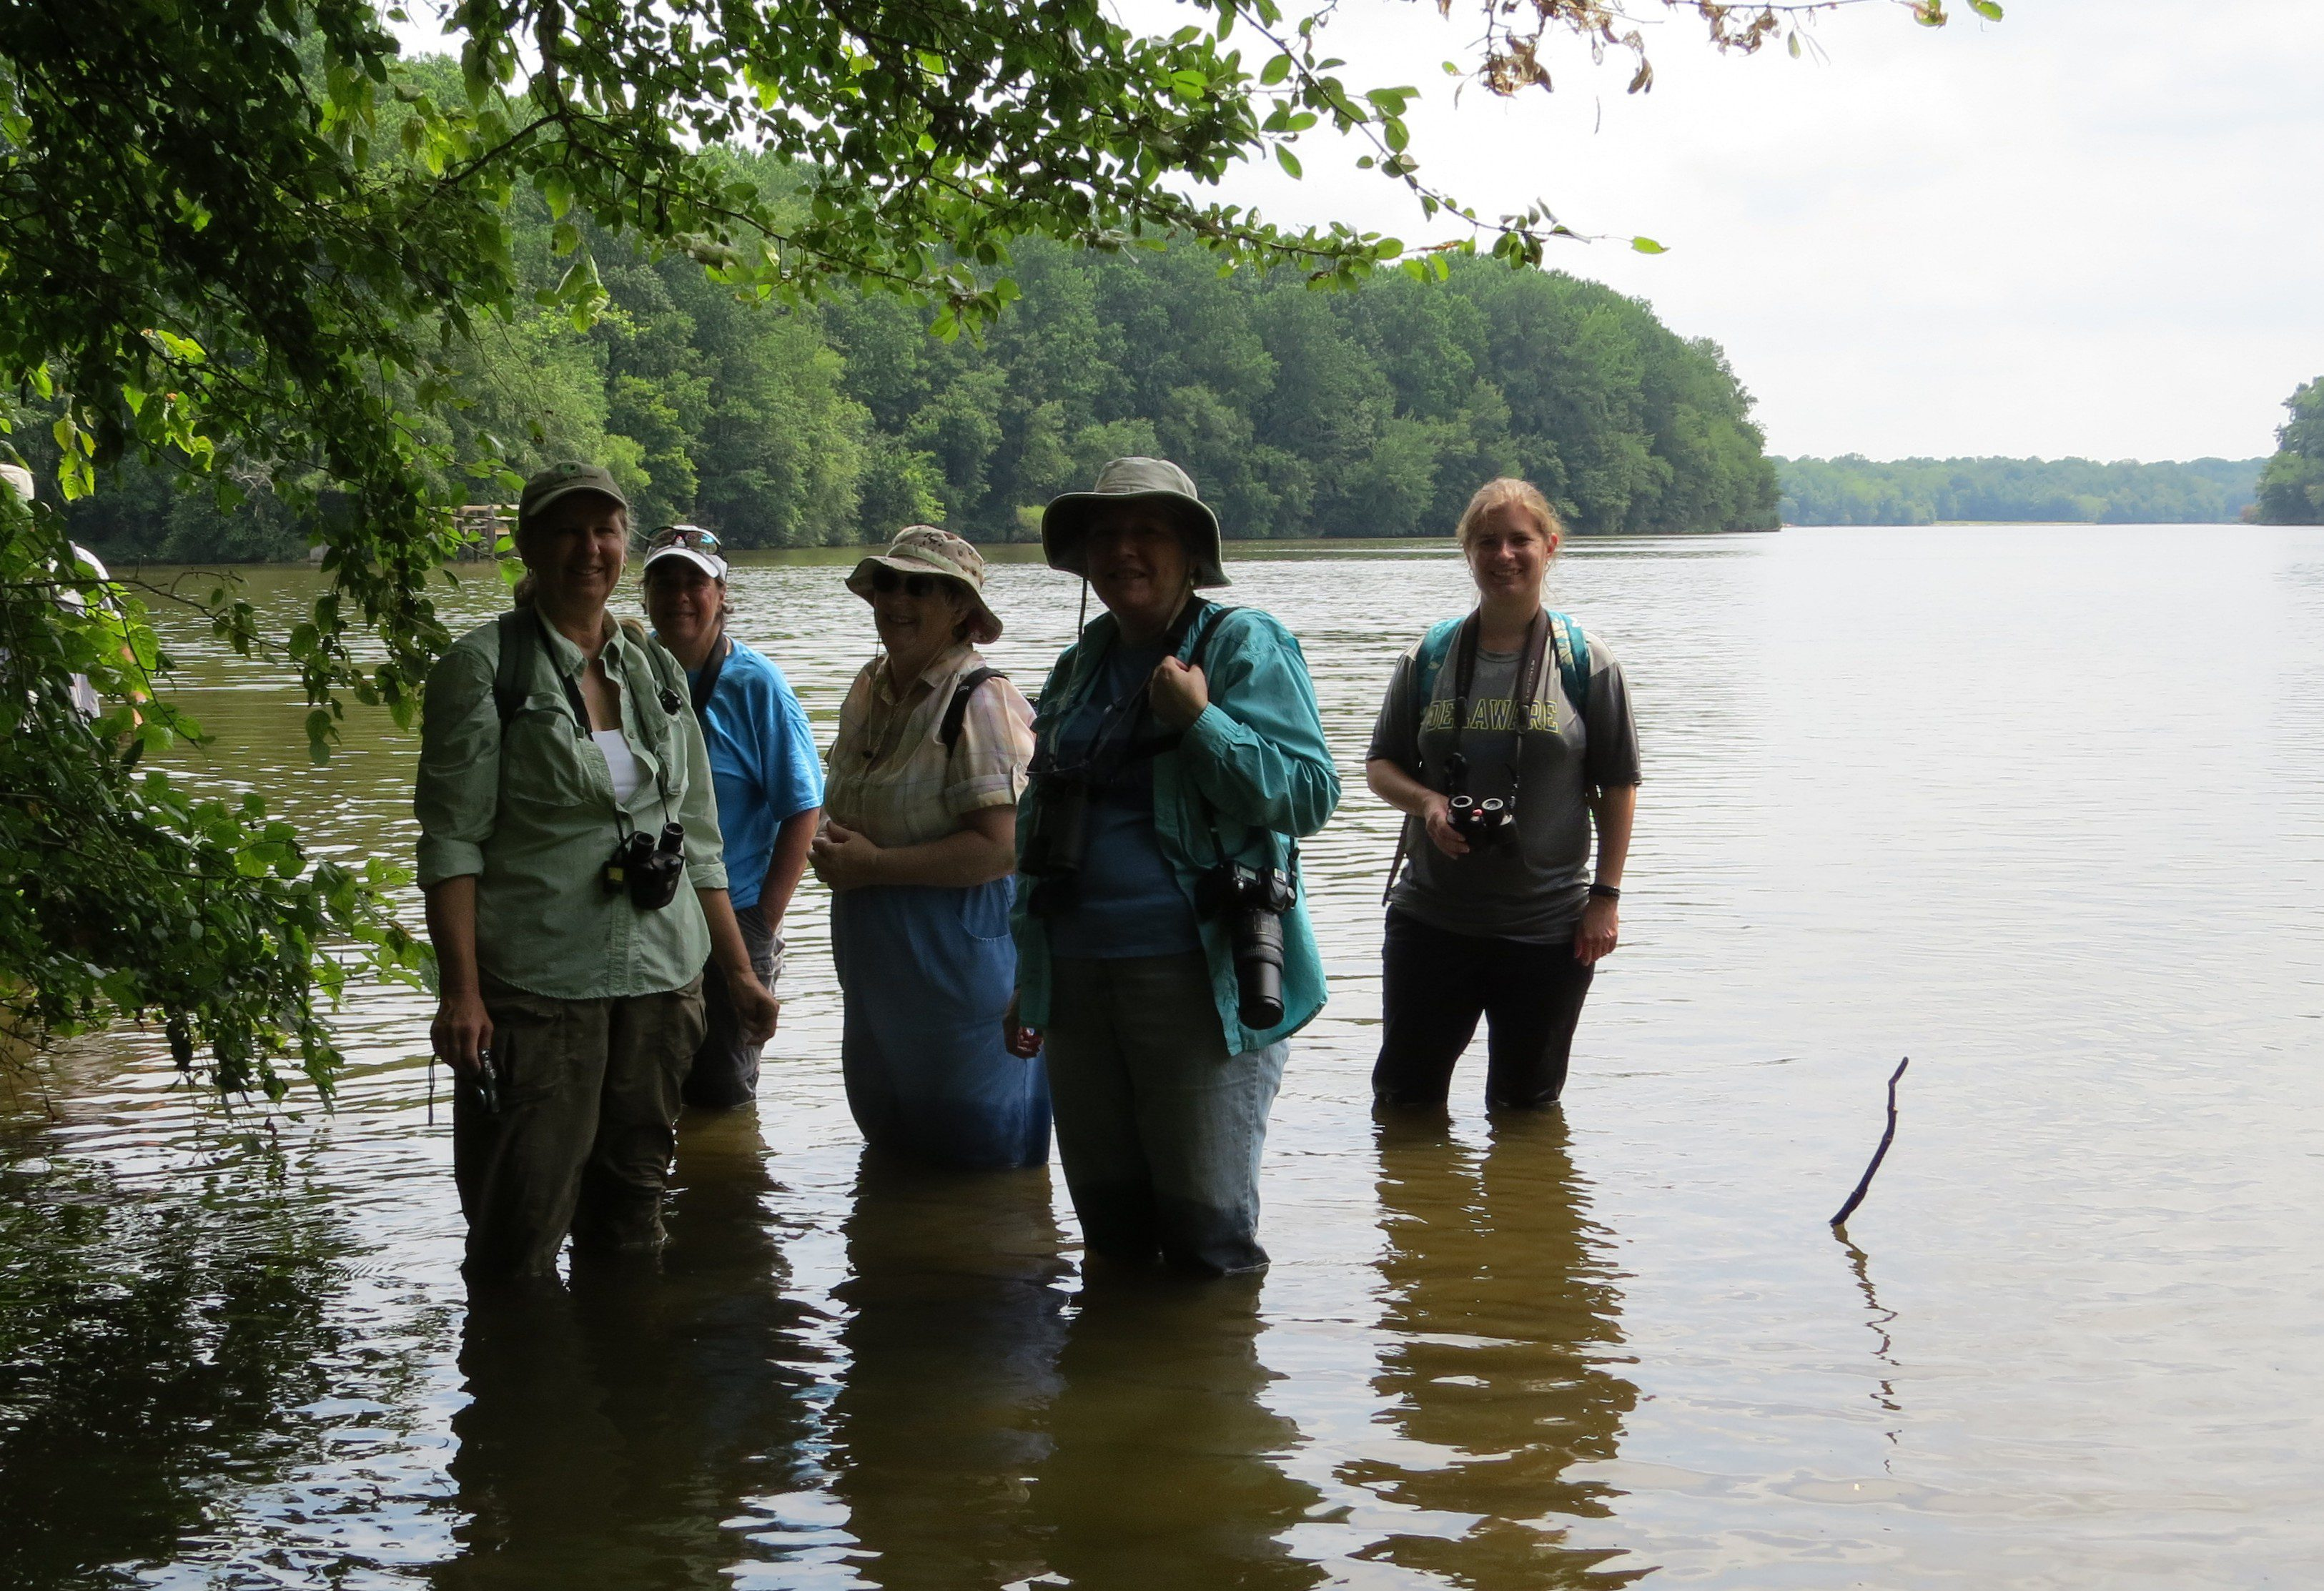 Looking for dragonflies and damselflies requires getting your feet wet, or in this case, wading into Lums Pond.  Some of us got a lot more of our bodies wet than our feet!  Photo by Joe Sebastiani